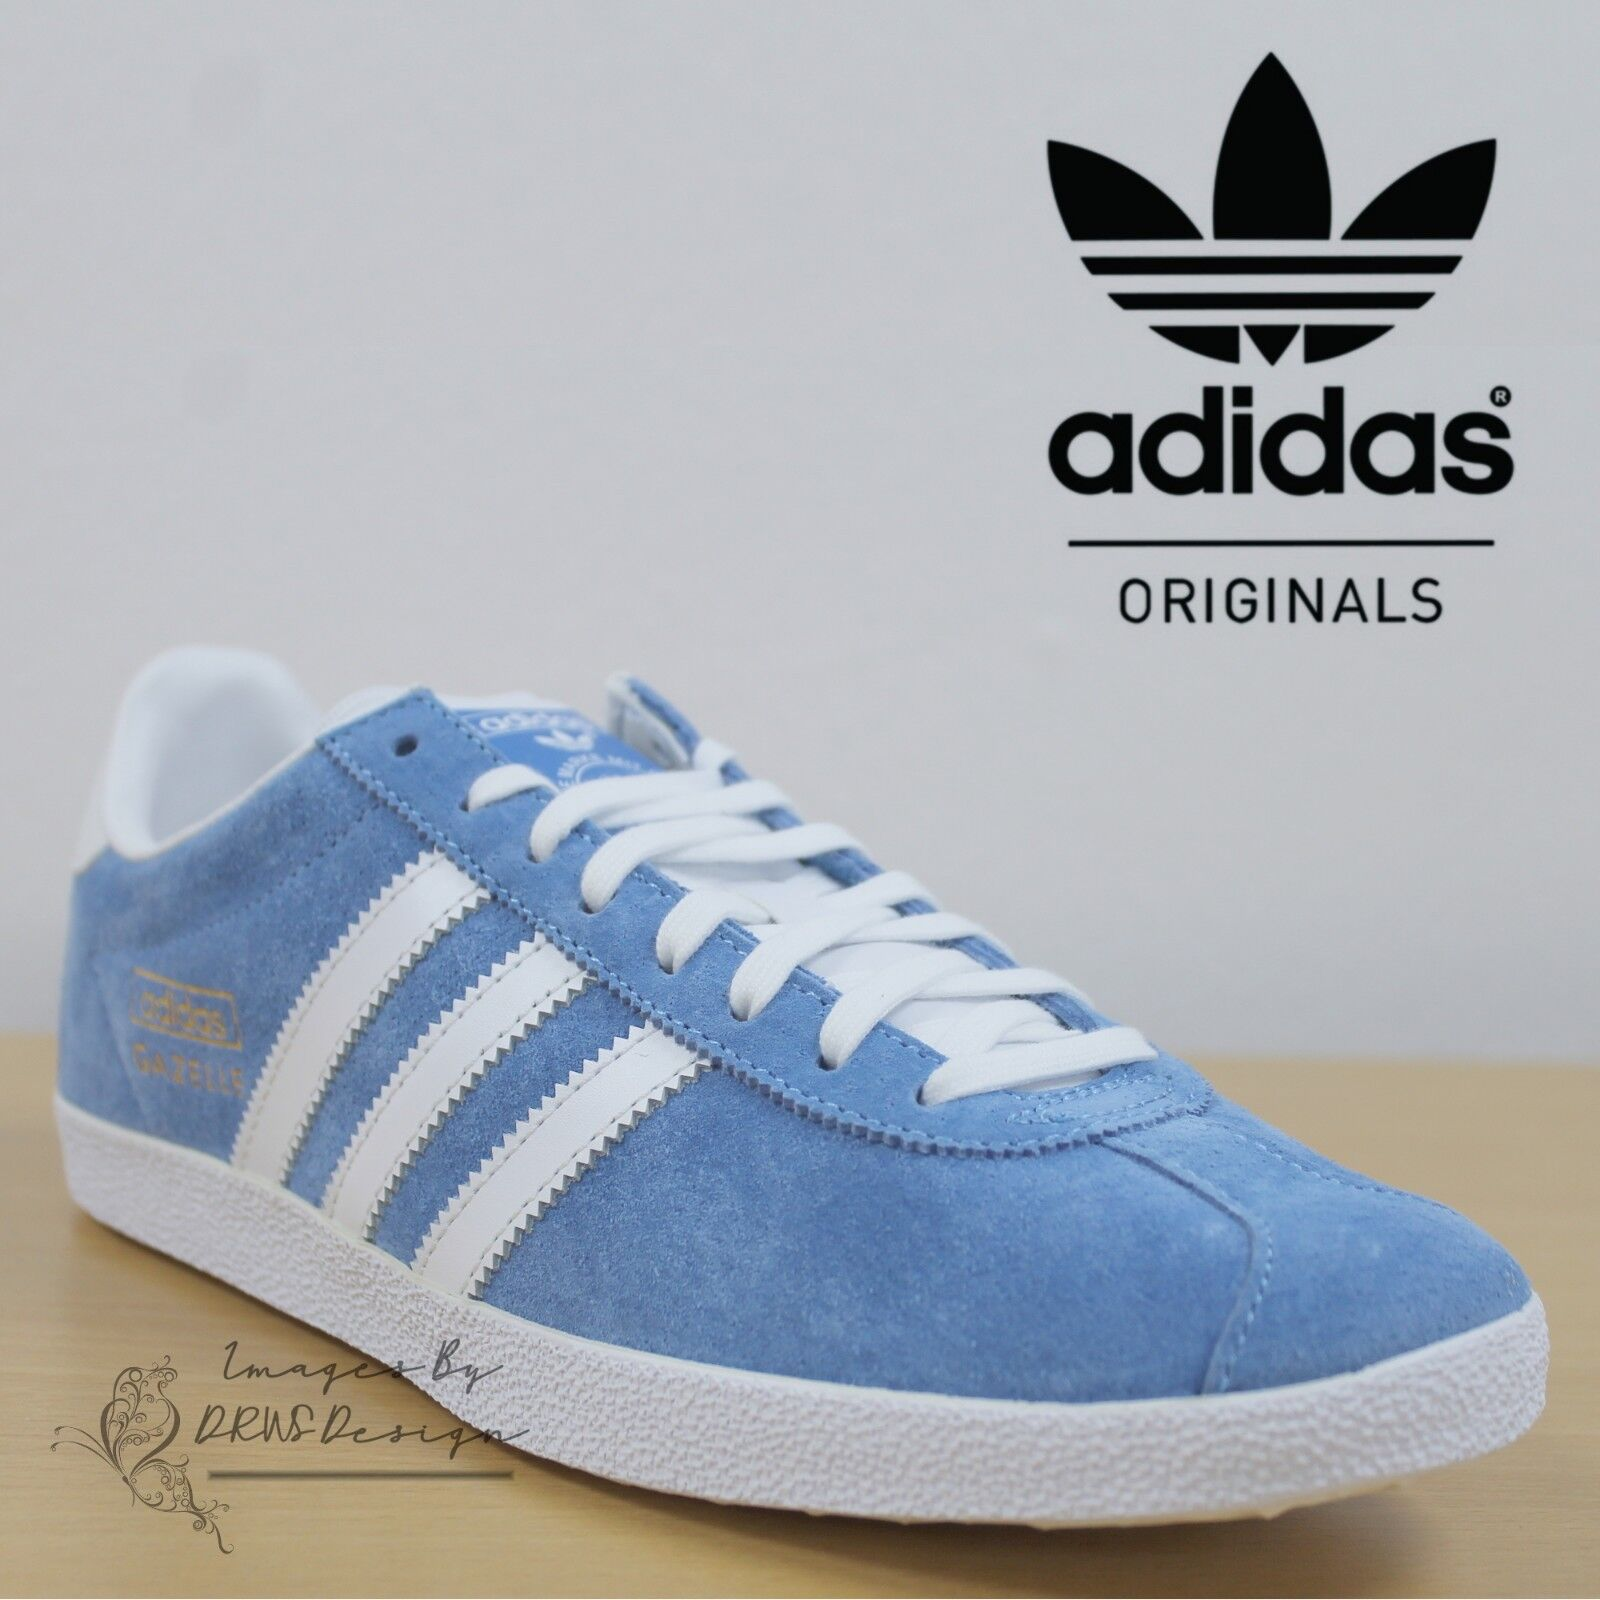 Details about adidas Originals Gazelle OG Men s Blue Trefoil Trainers  Casual Retro Sneakers 11a831f8c